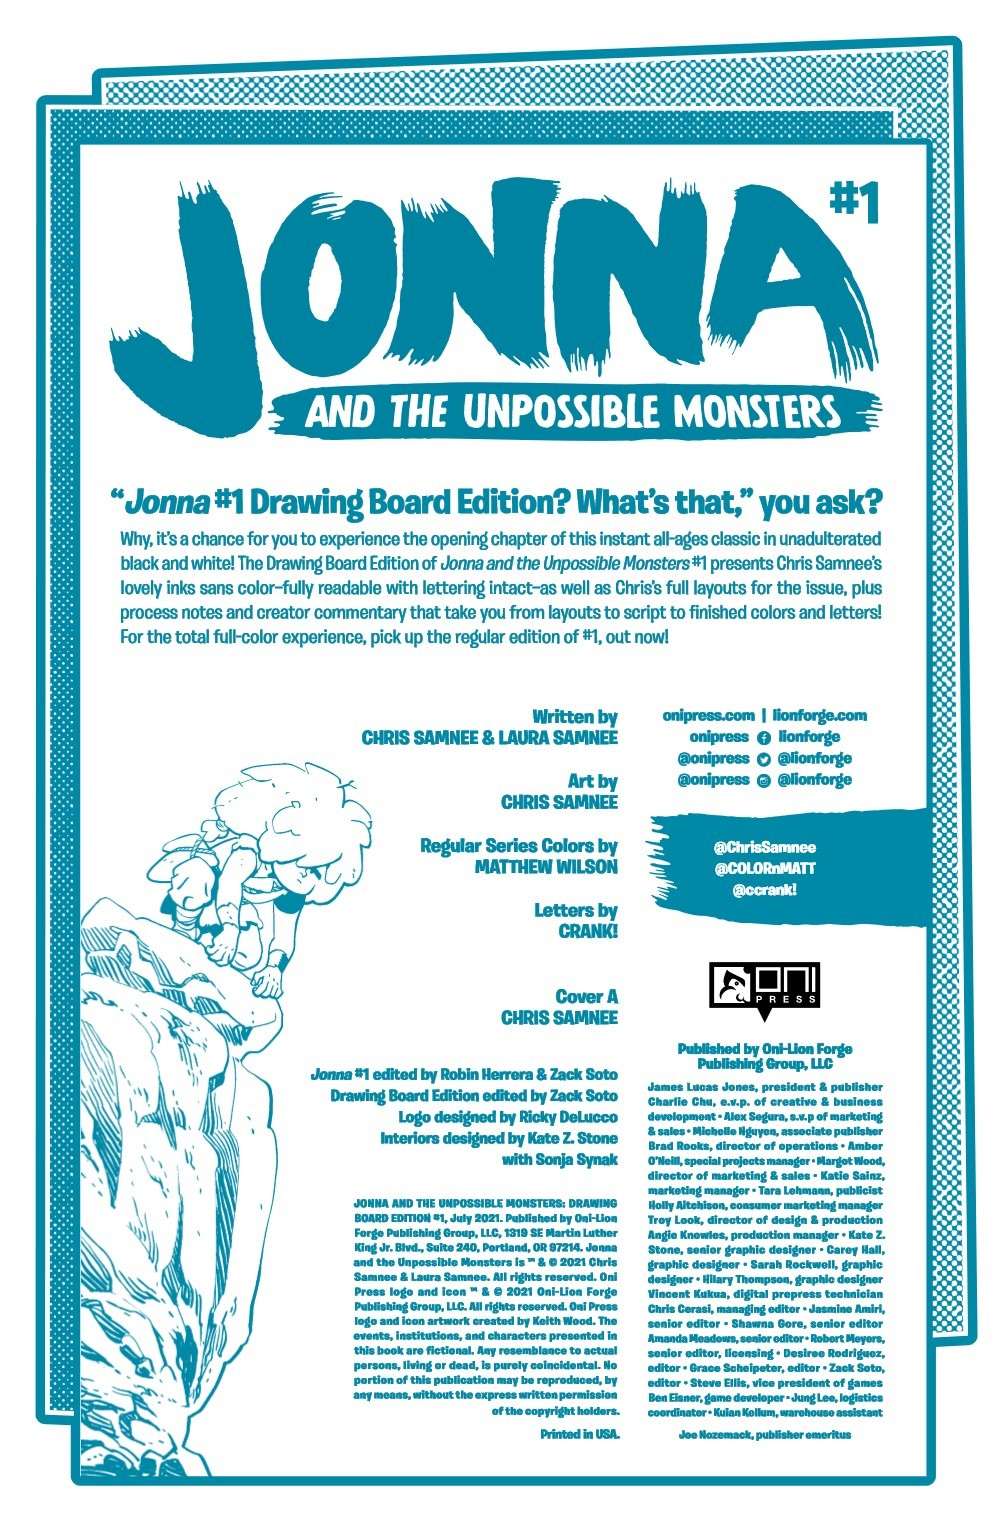 JONNA-1-DB-PGS-01-32-FNL-1-02 ComicList Previews: JONNA AND THE UNPOSSIBLE MONSTERS #1 (DRAWING BOARD EDITION)